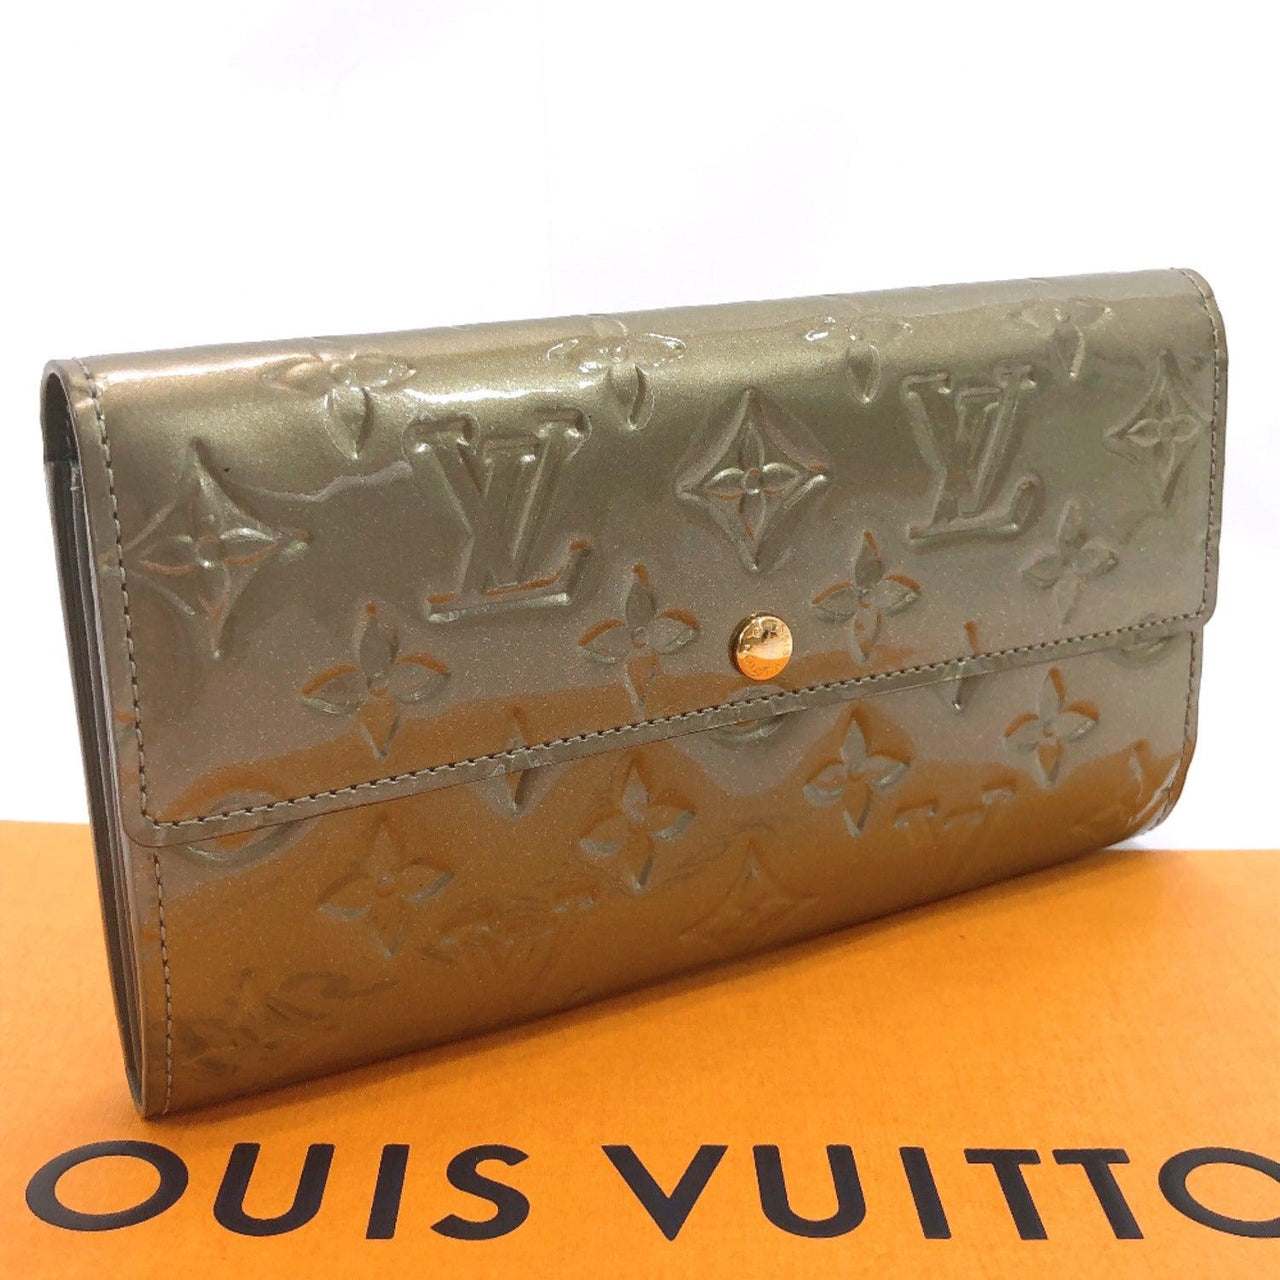 LOUIS VUITTON purse M91564 Portefeiulle Sarah Monogram Vernis khaki Women Used